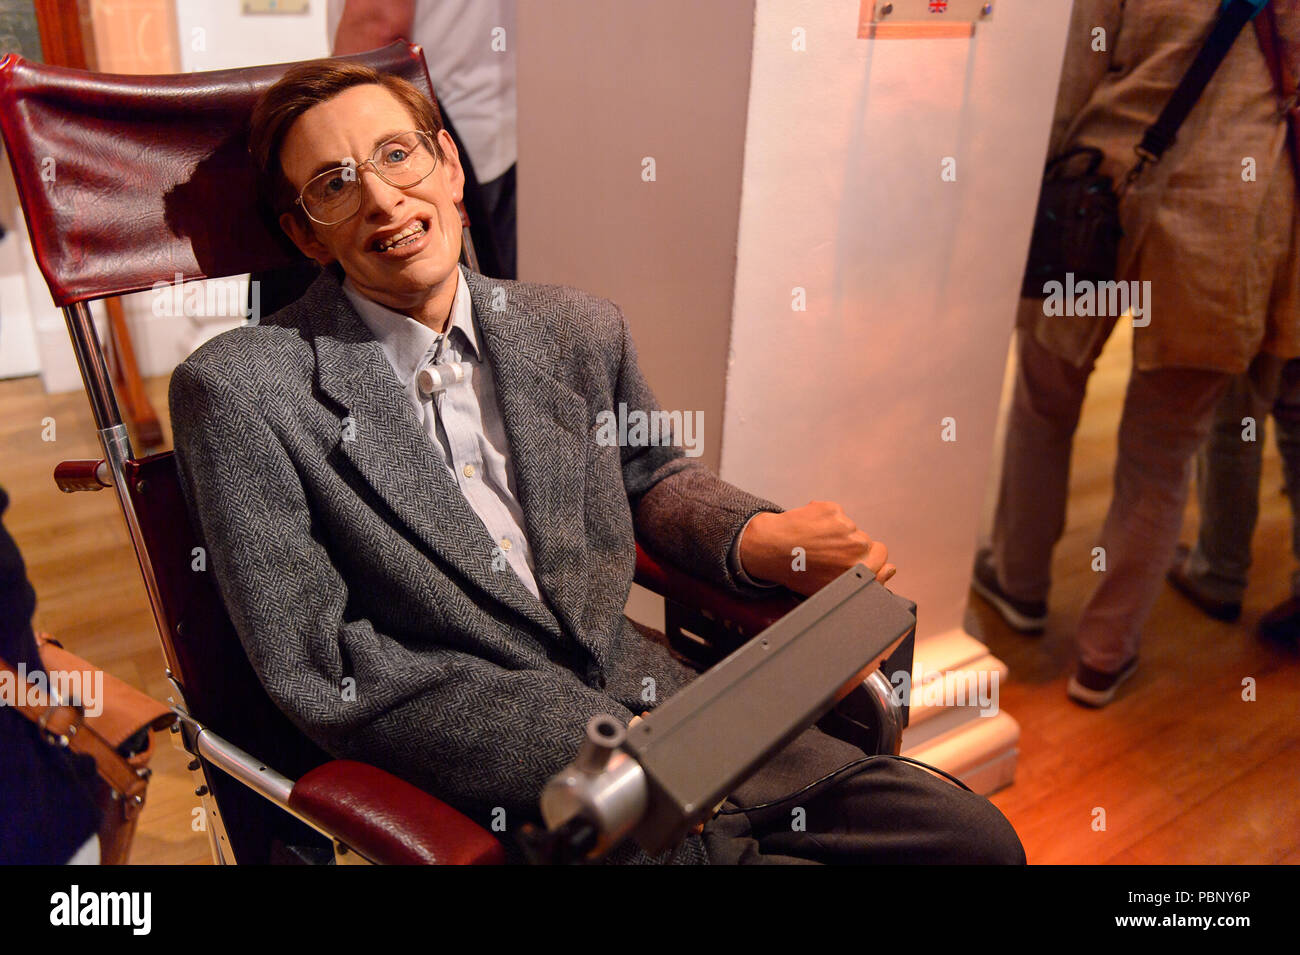 LONDON, ENGLAND - JULY 22, 2016: Professor Stephen Hawking,  Madame Tussauds wax museum. It is a major tourist attraction in London Stock Photo